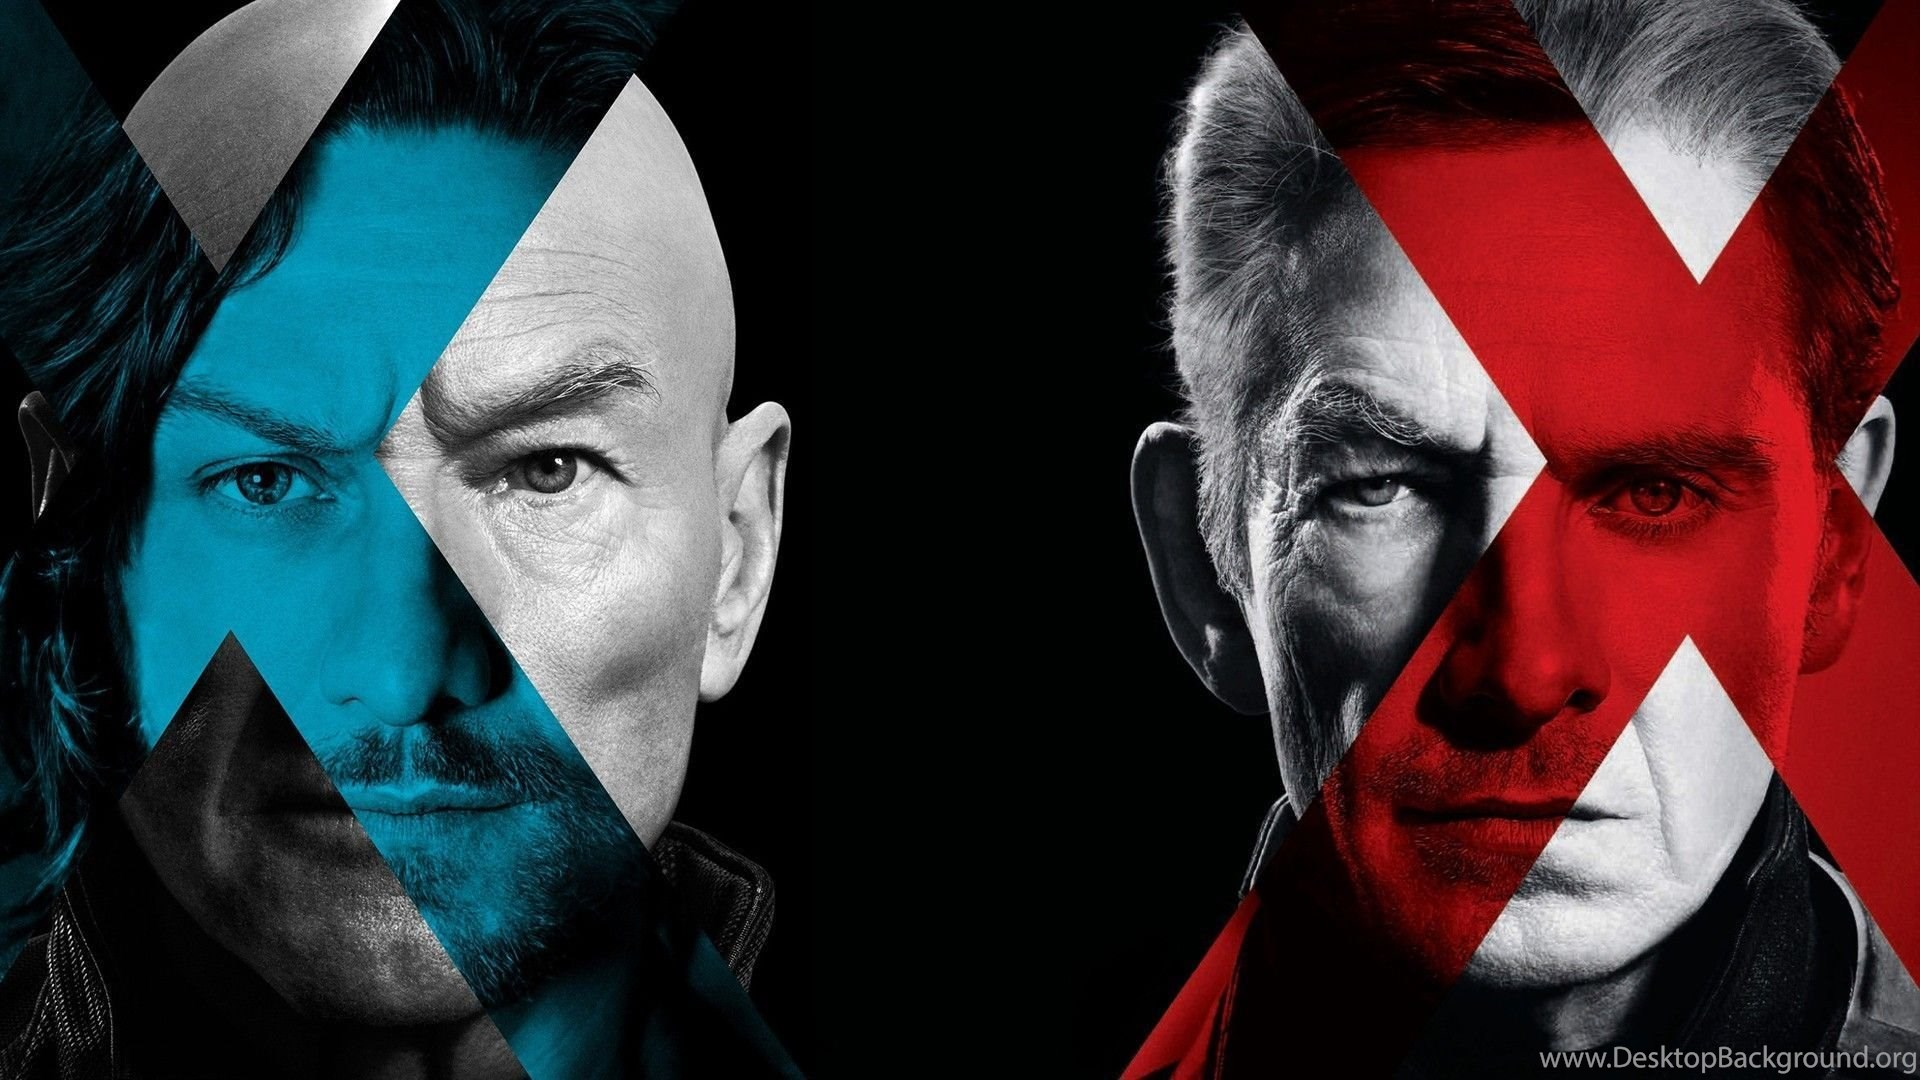 X Men Days Of Future Past Wallpapers And Images Desktop Background